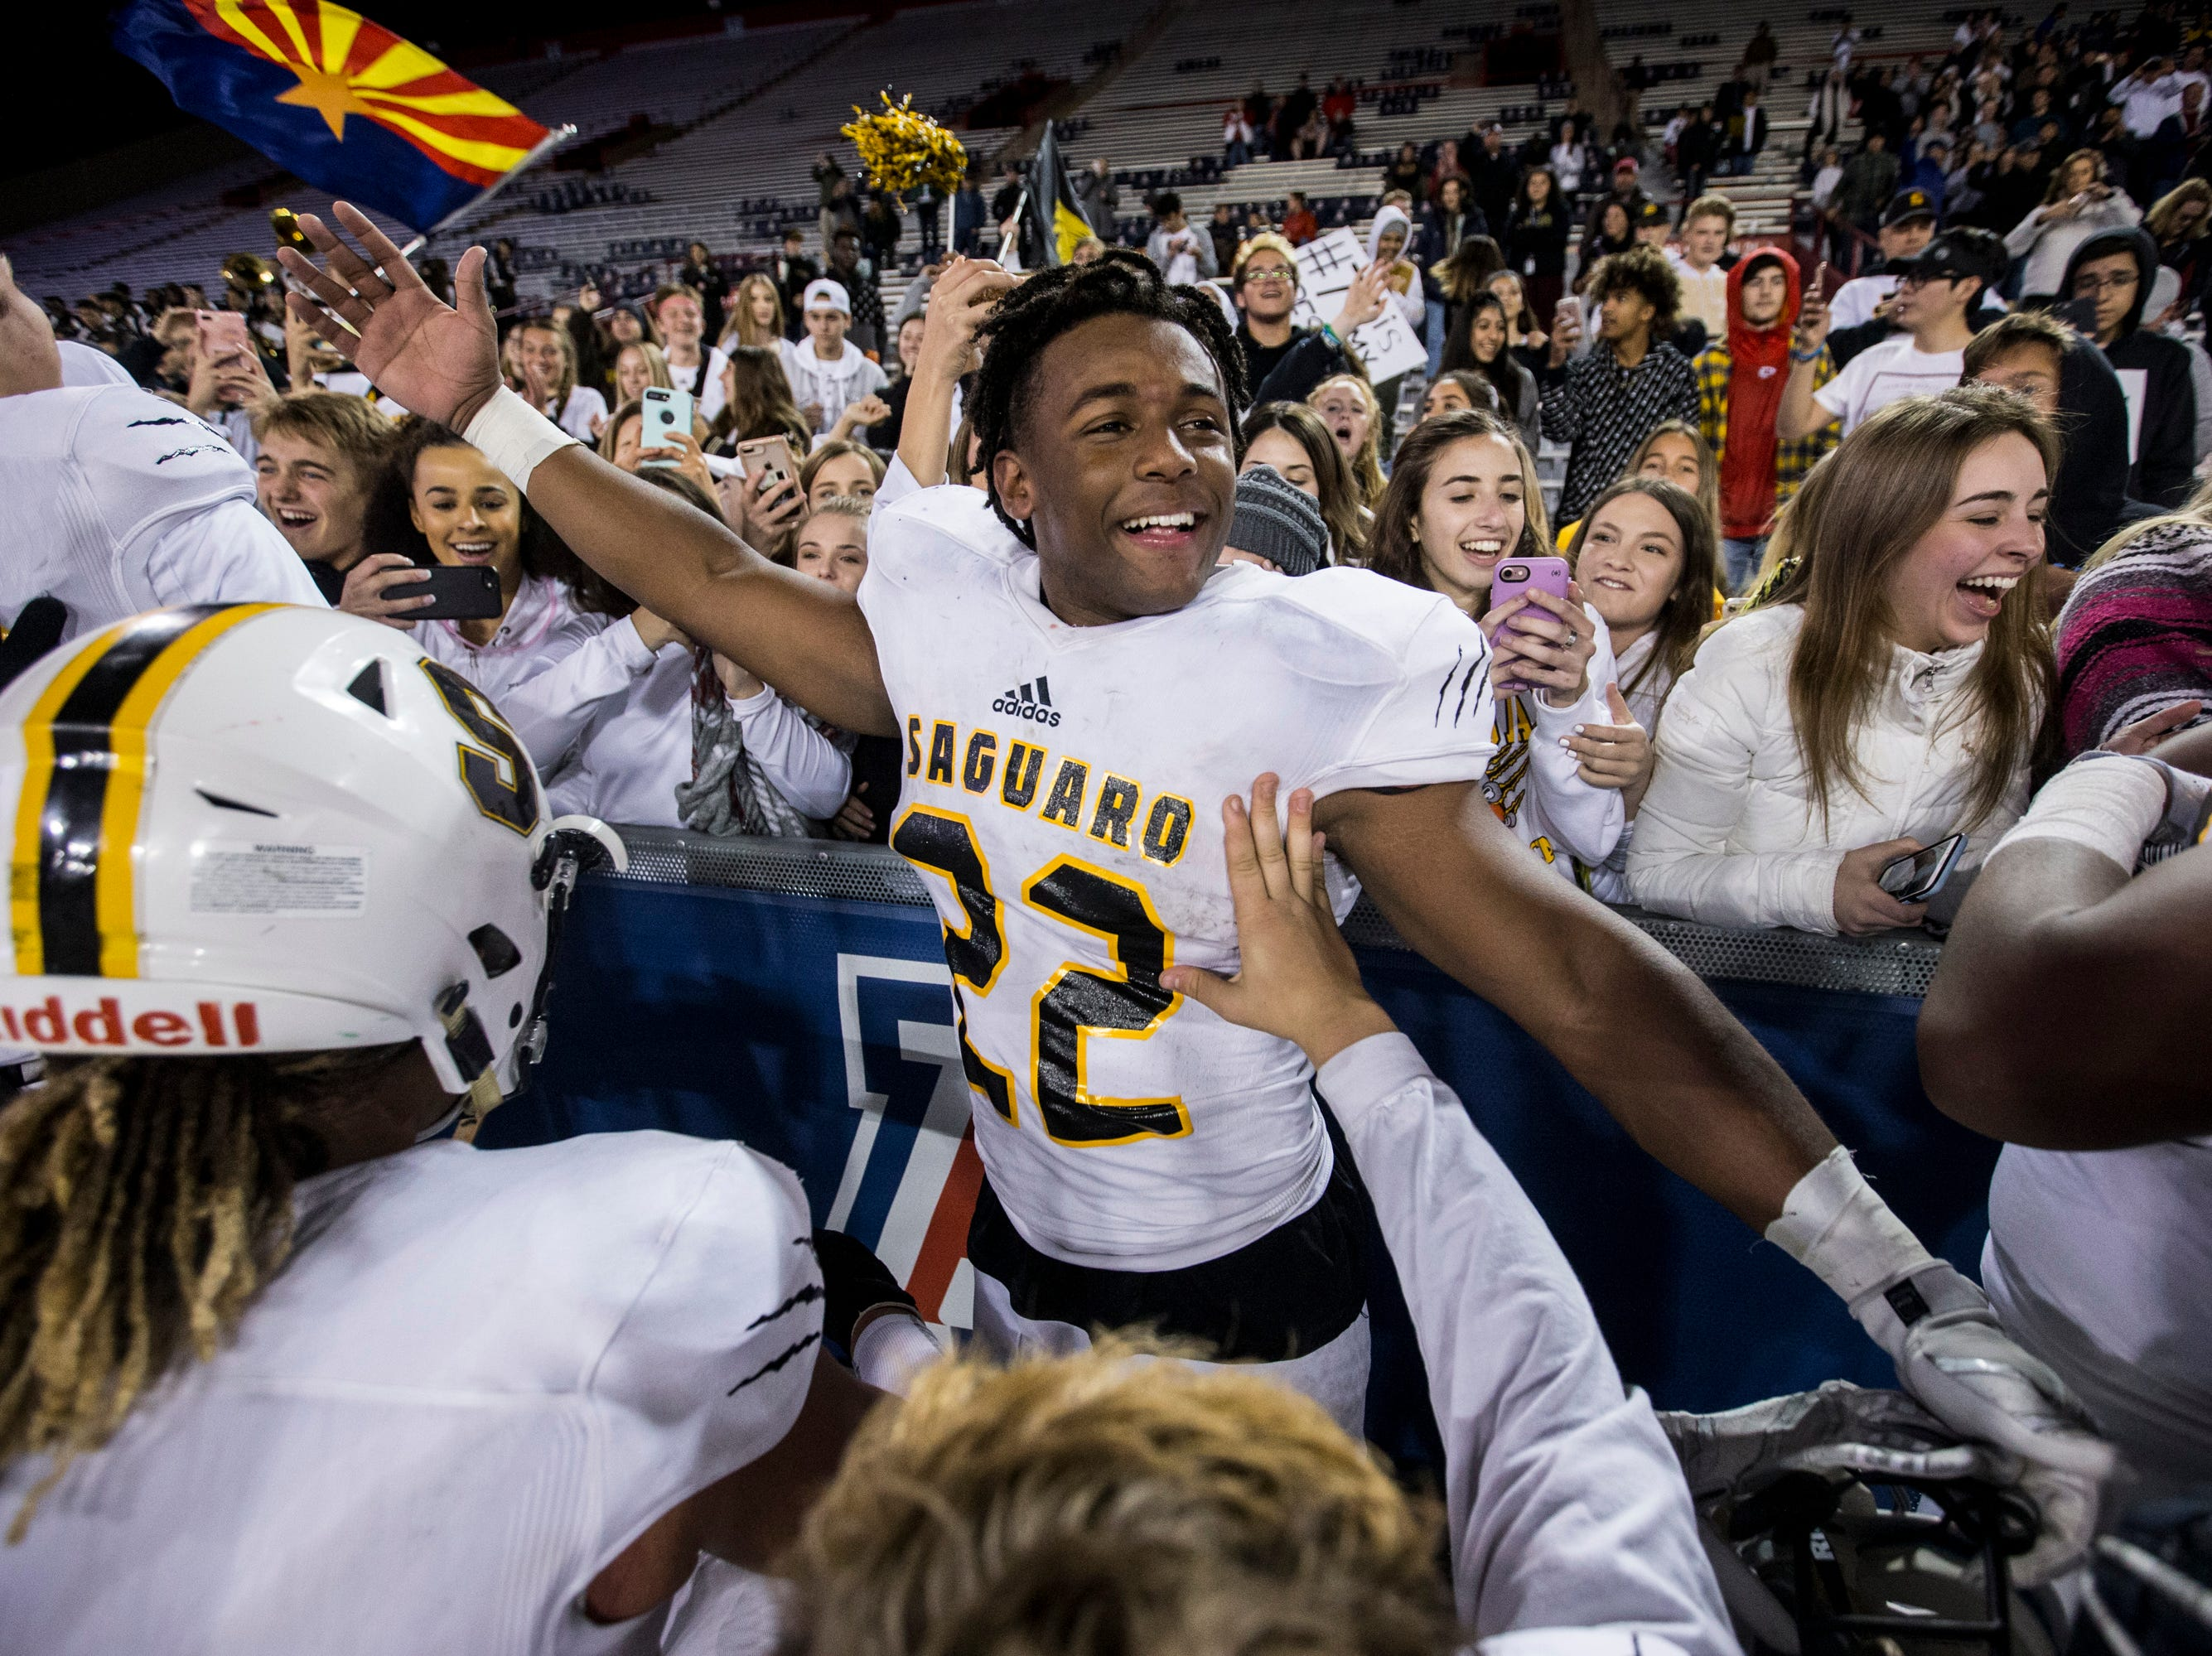 Saguaro's Israel Benjamin celebrates after defeating Salpointe for the 4A State Championship on Friday, Nov. 30, 2018, at Arizona Stadium in Tucson, Ariz. Saguaro won, 42-16.